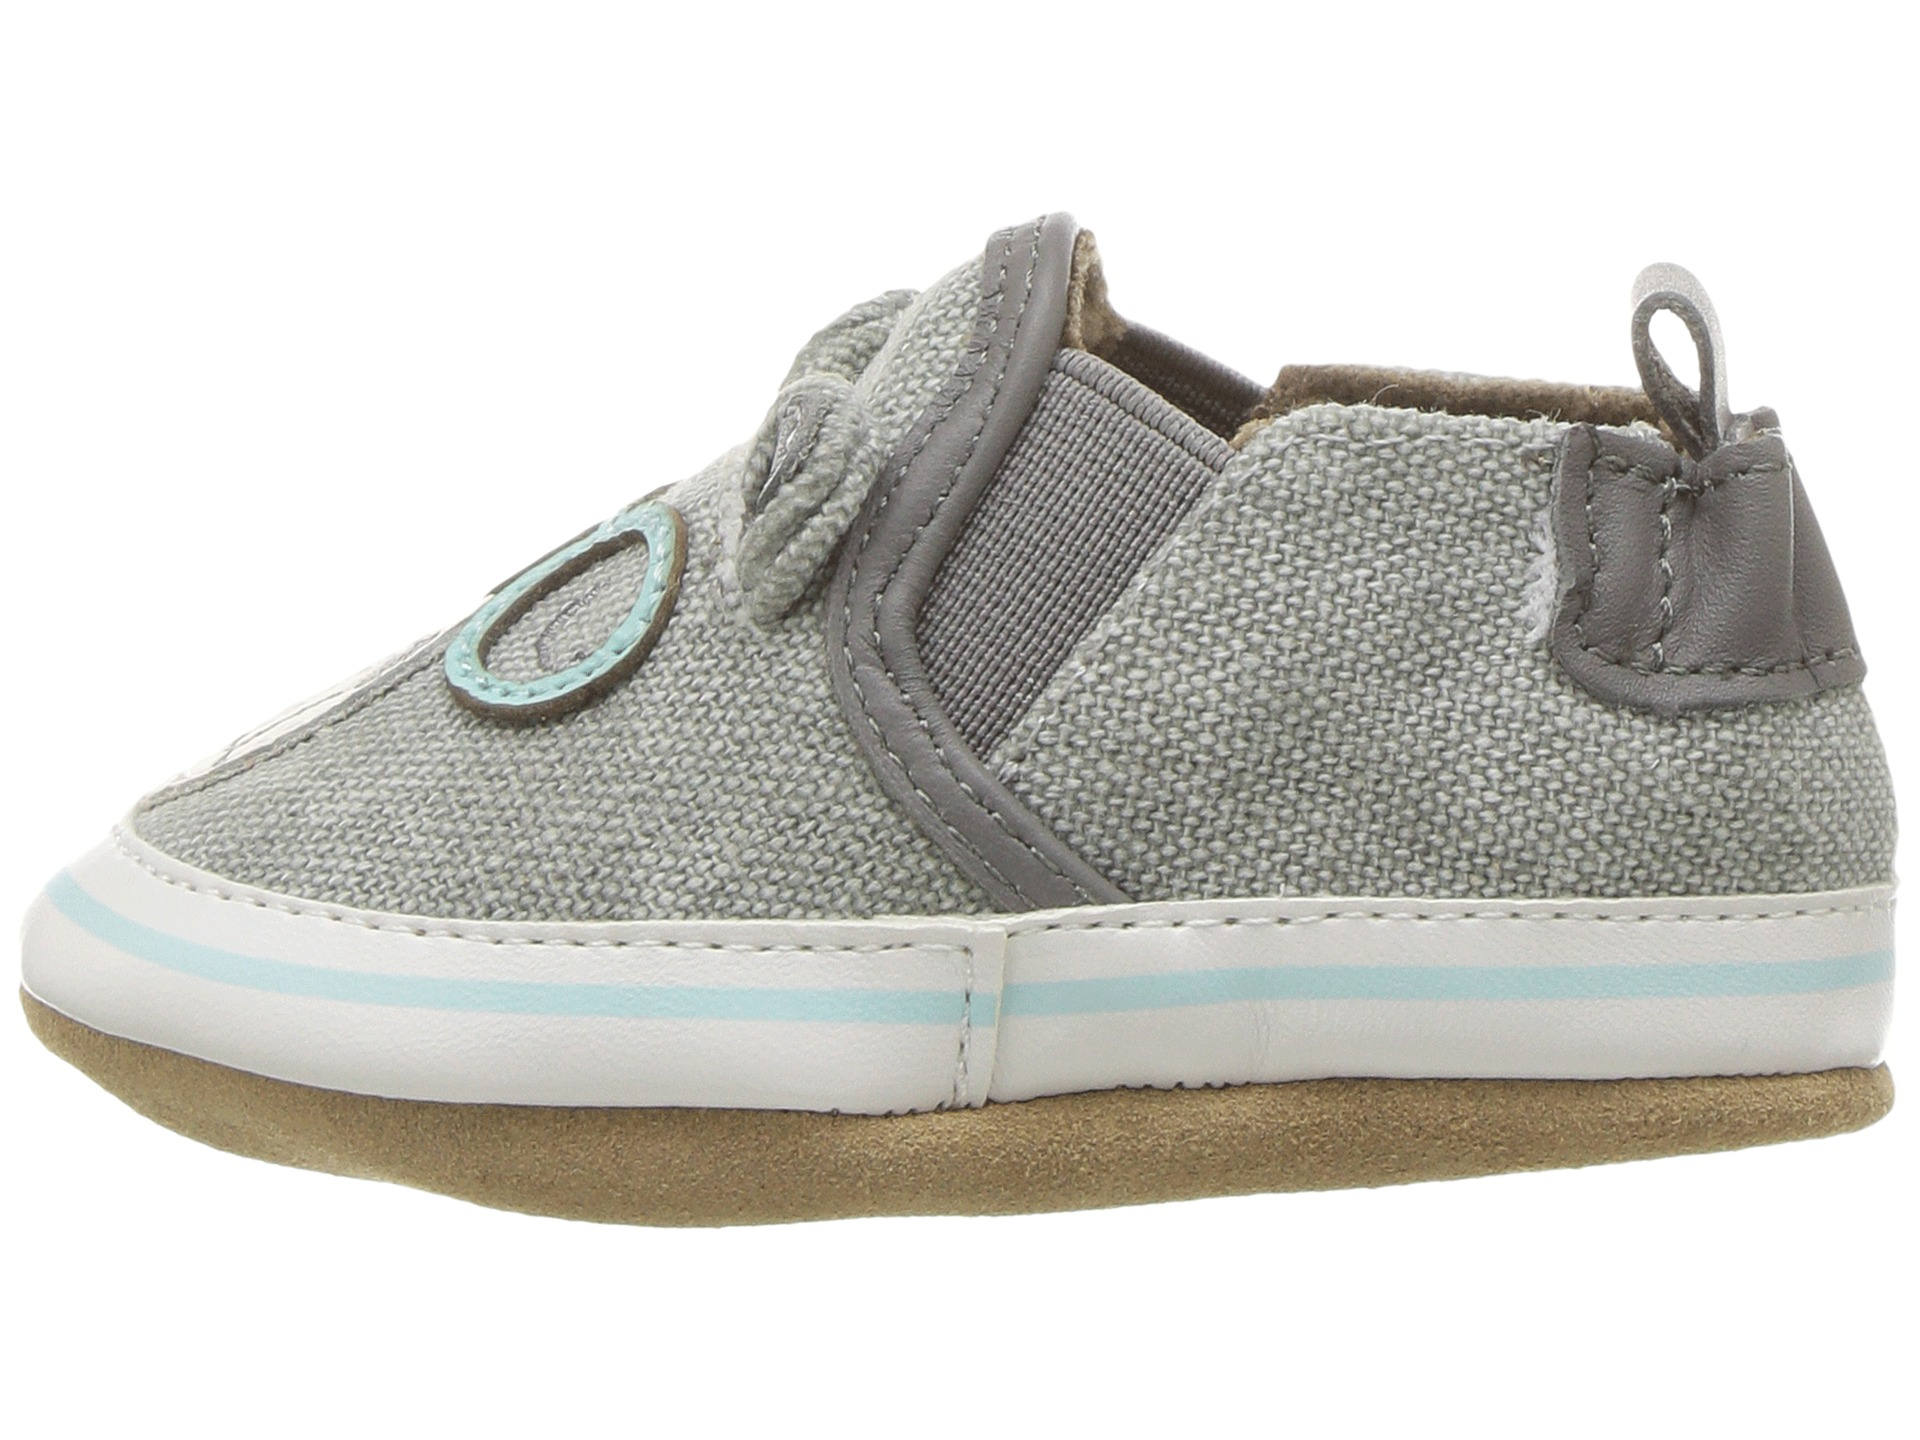 Robeez Brainy Bear Soft Sole (Infant/Toddler) at Zappos.com